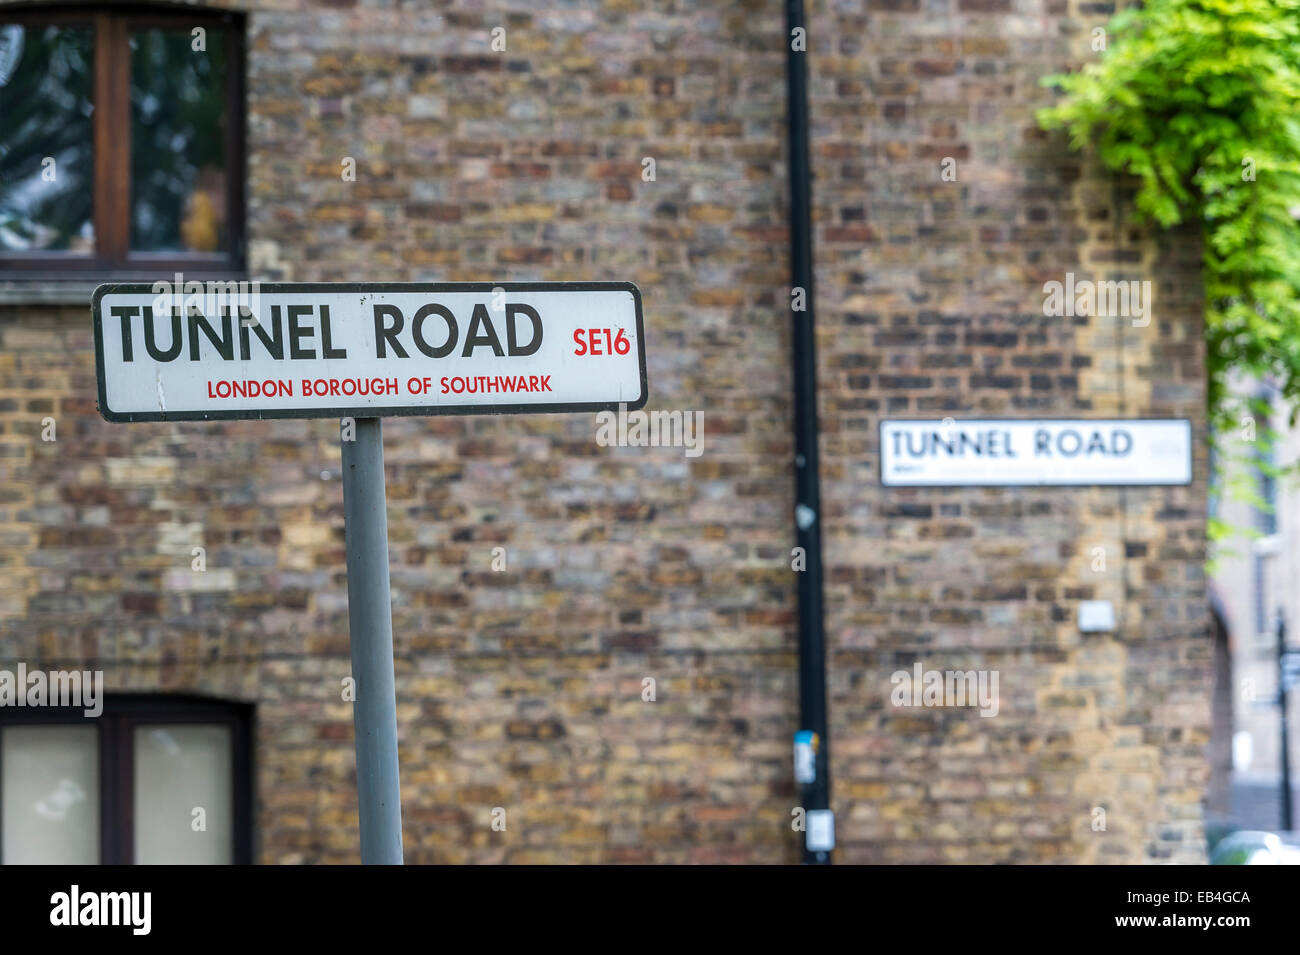 Tunnel Road in Rotherhithe celebrates the famous engineer Isambard Kingdom Brunel and the Thames Tunnel - Stock Image